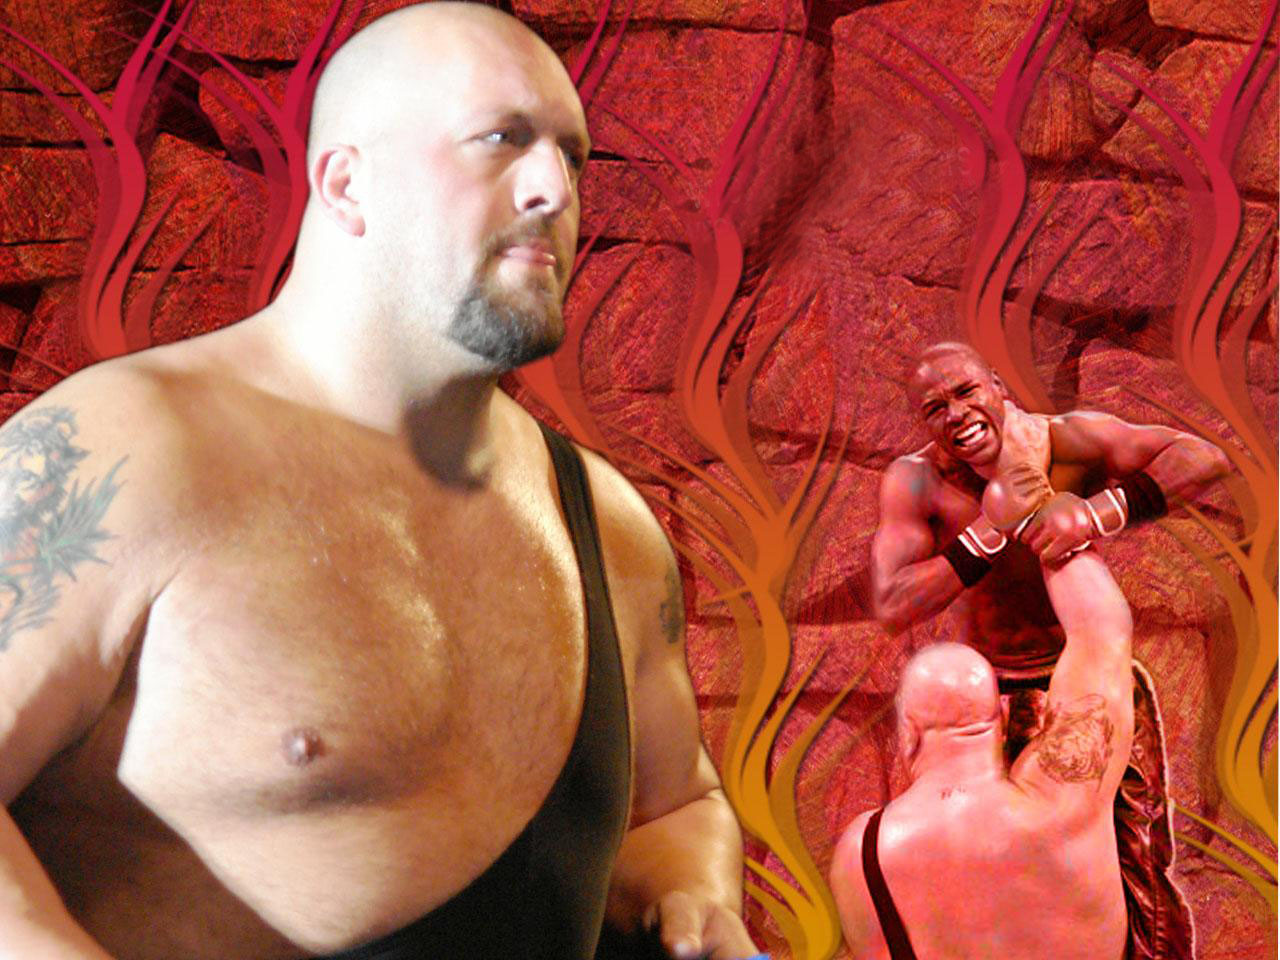 Big Show Wallpapers Big Show WWE wallpapers WWE Superstars WWE wallpapers WWE pictures